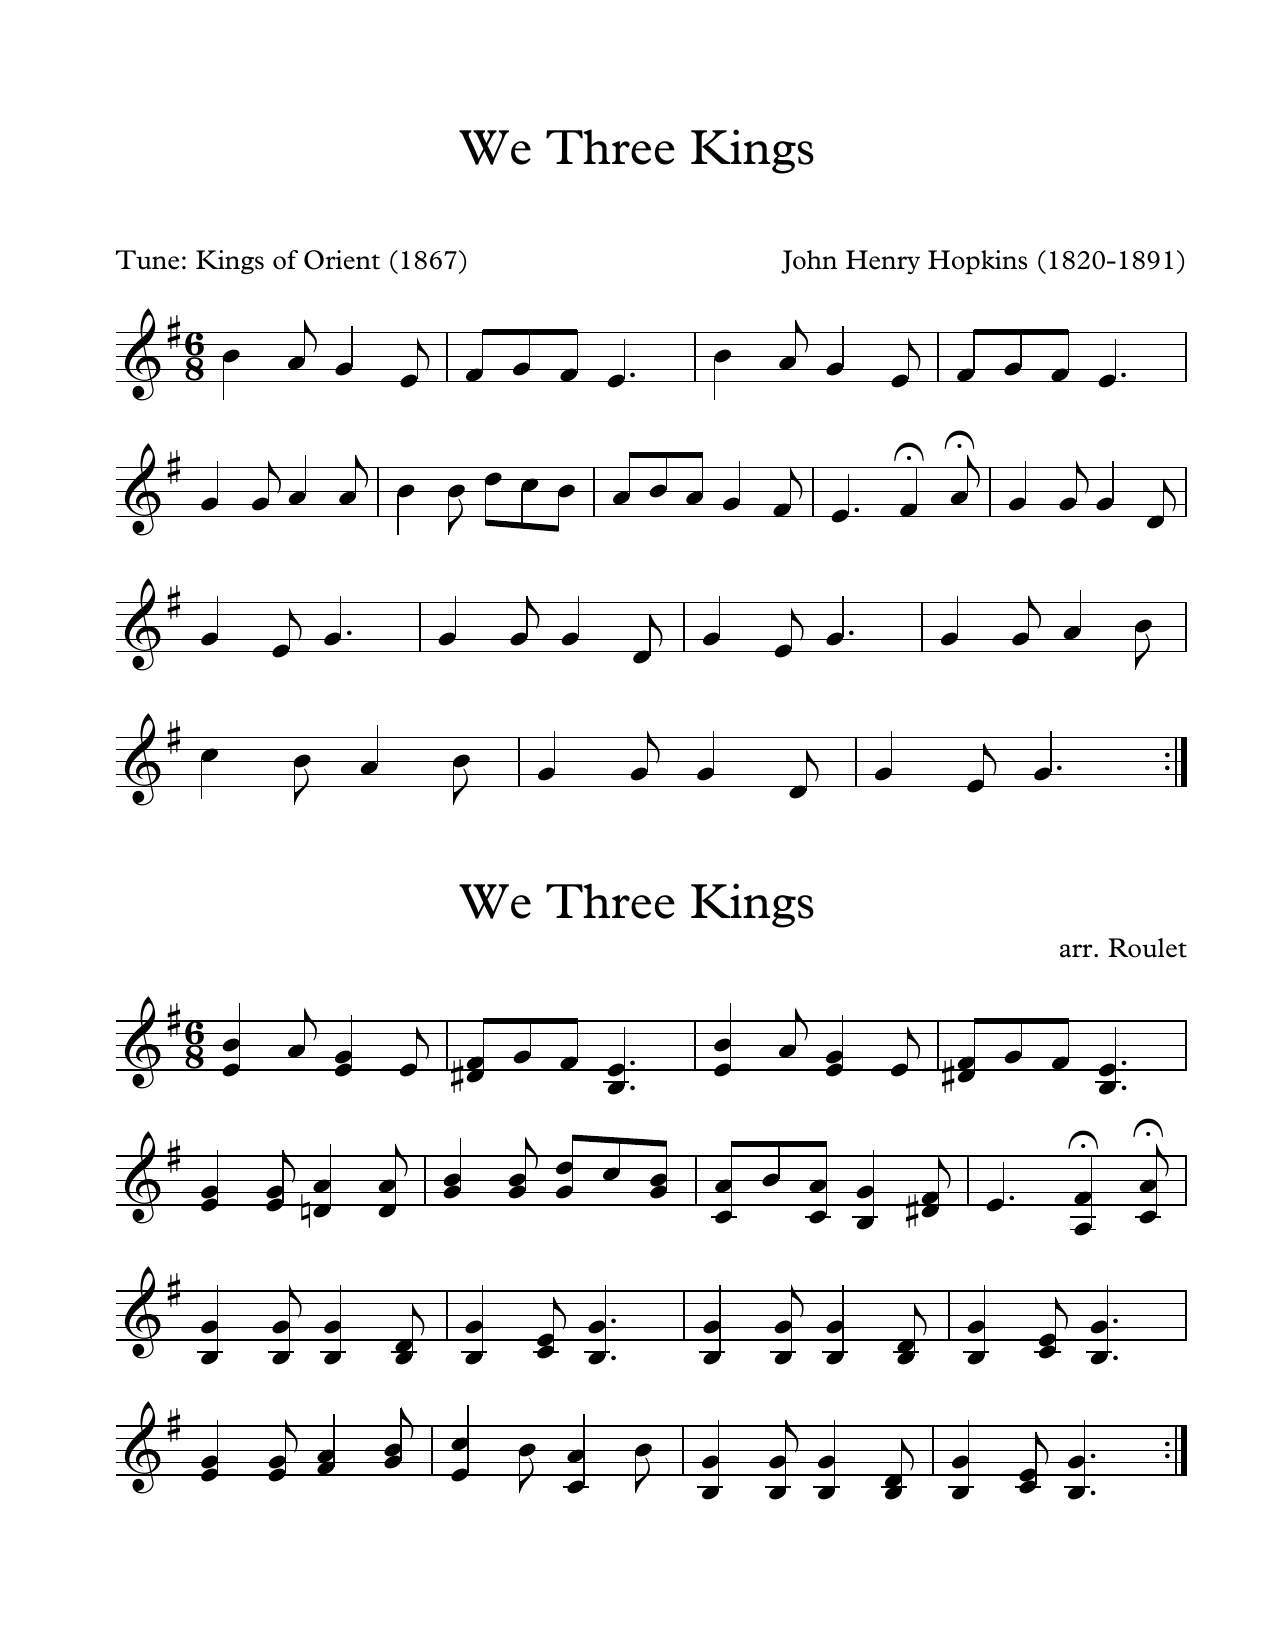 John Henry Hopkins We Three Kings (arr. Patrick Roulet) sheet music notes and chords. Download Printable PDF.